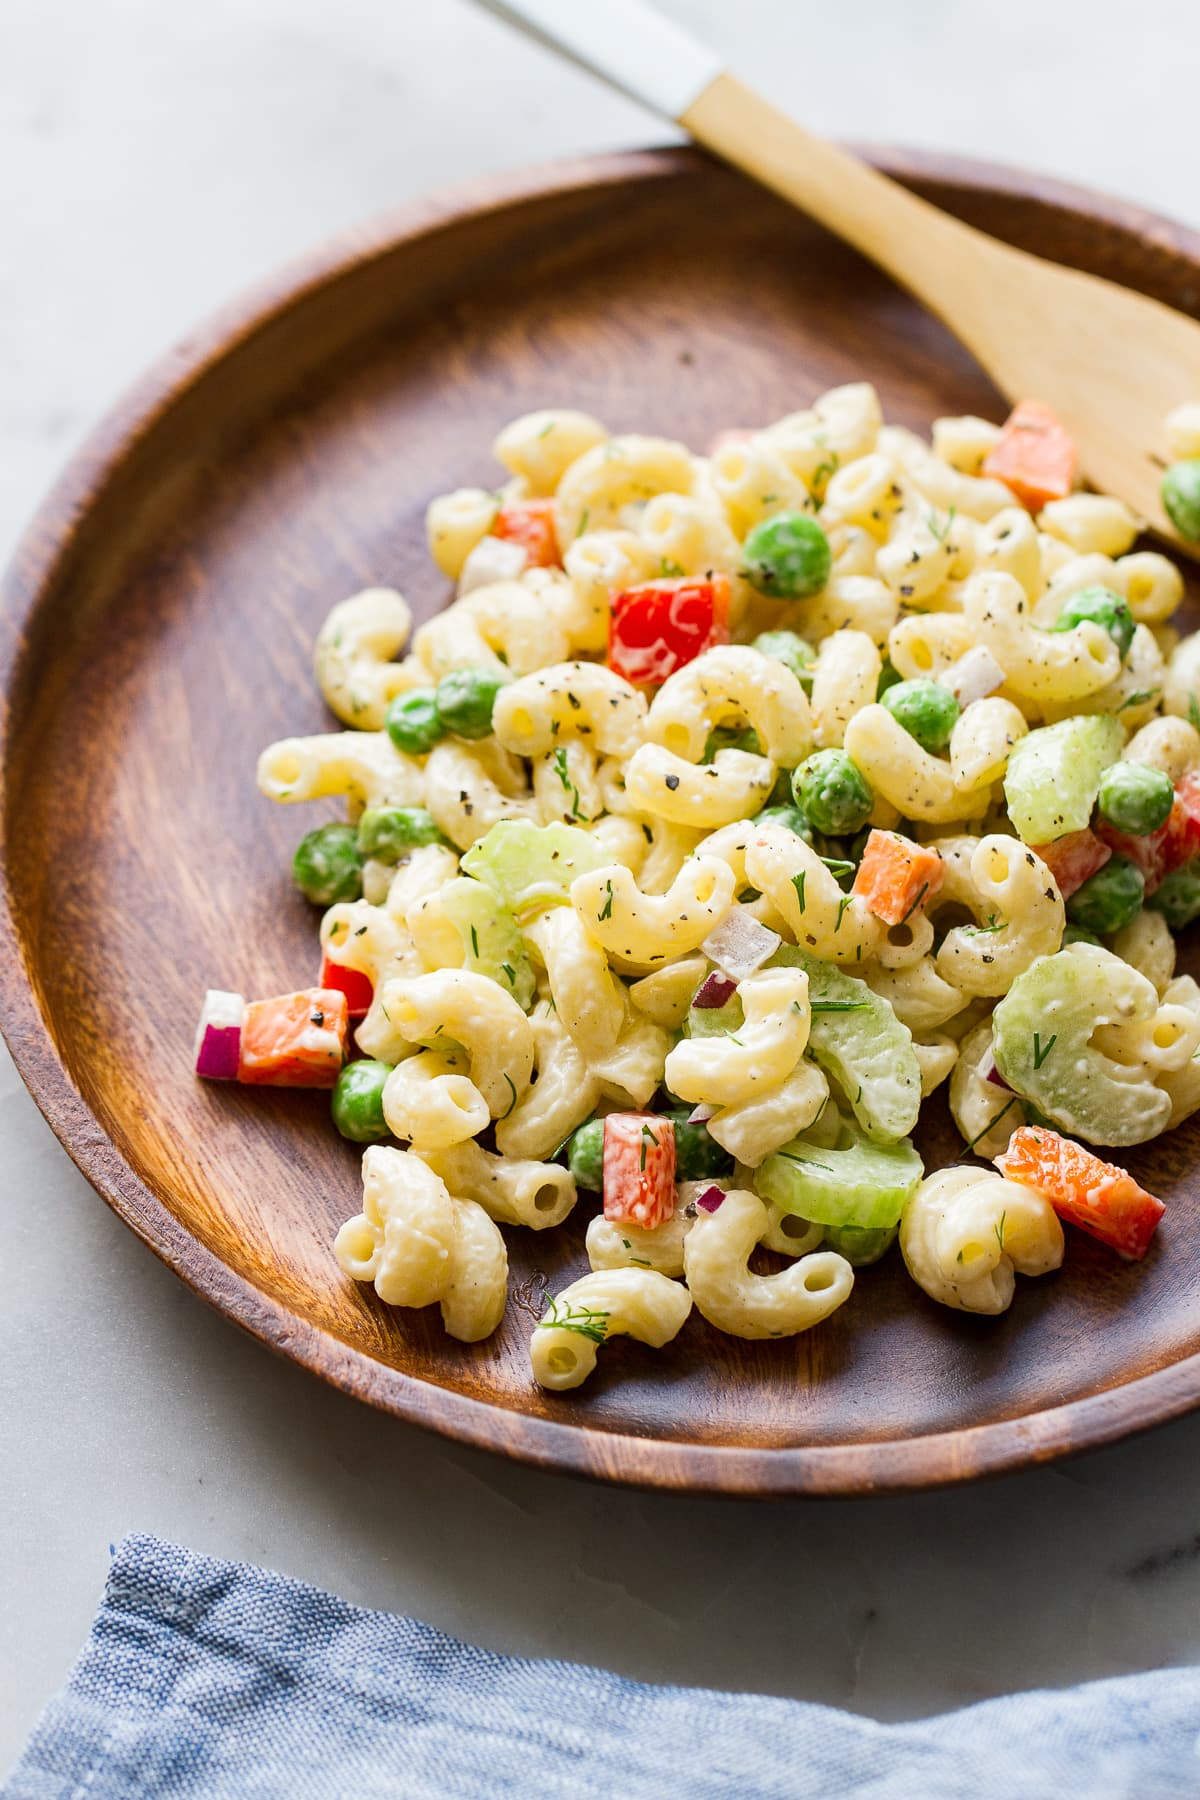 top down view of a serving of creamy vegan macaroni salad in a wooden plate.